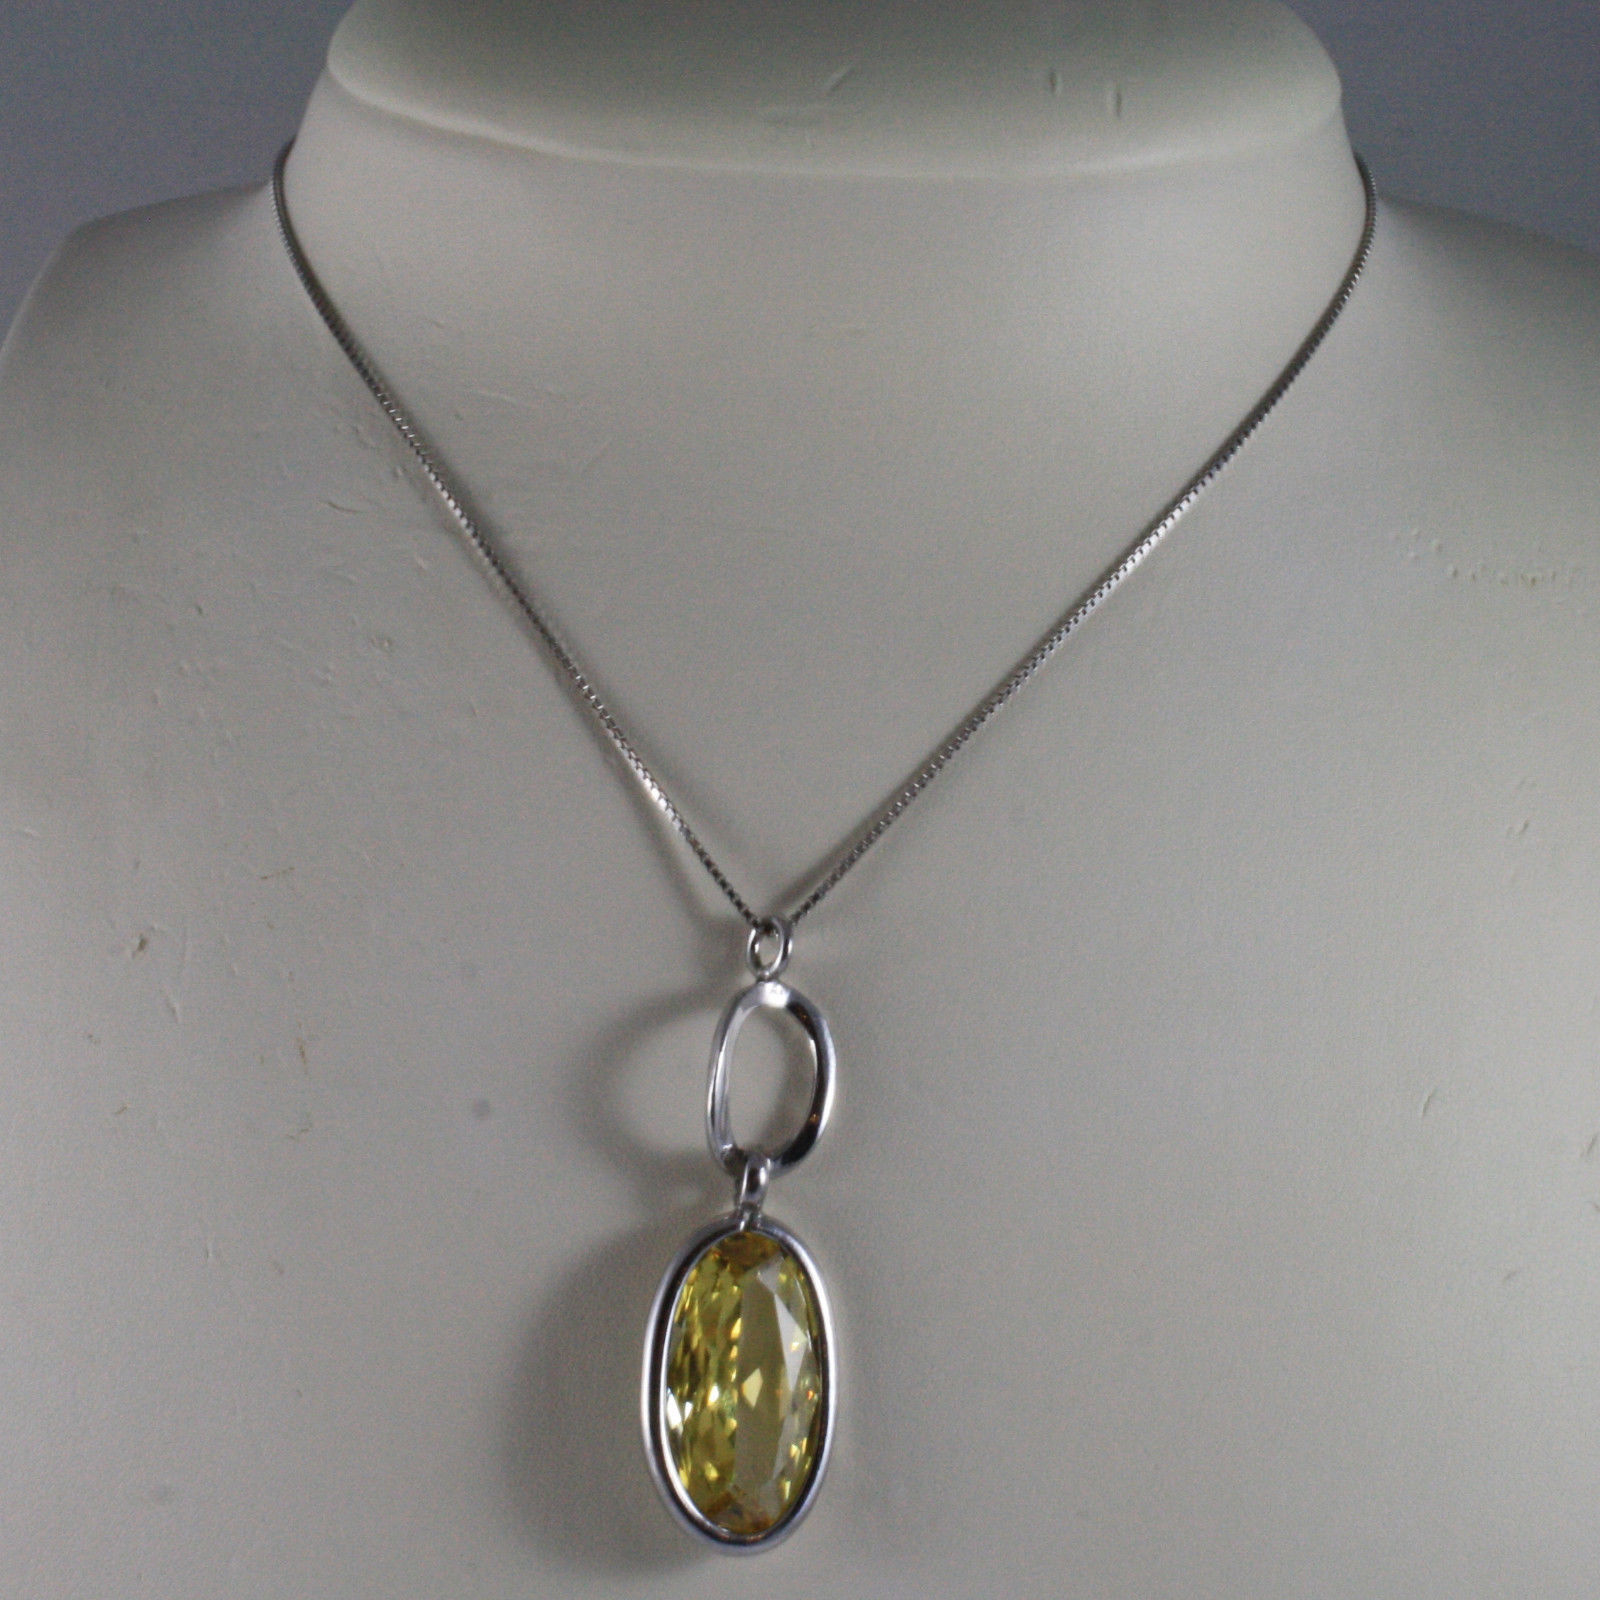 .925 SILVER RHODIUM NECKLACE WITH VENETIAN MESH AND YELLOW CRISTAL PENDANT